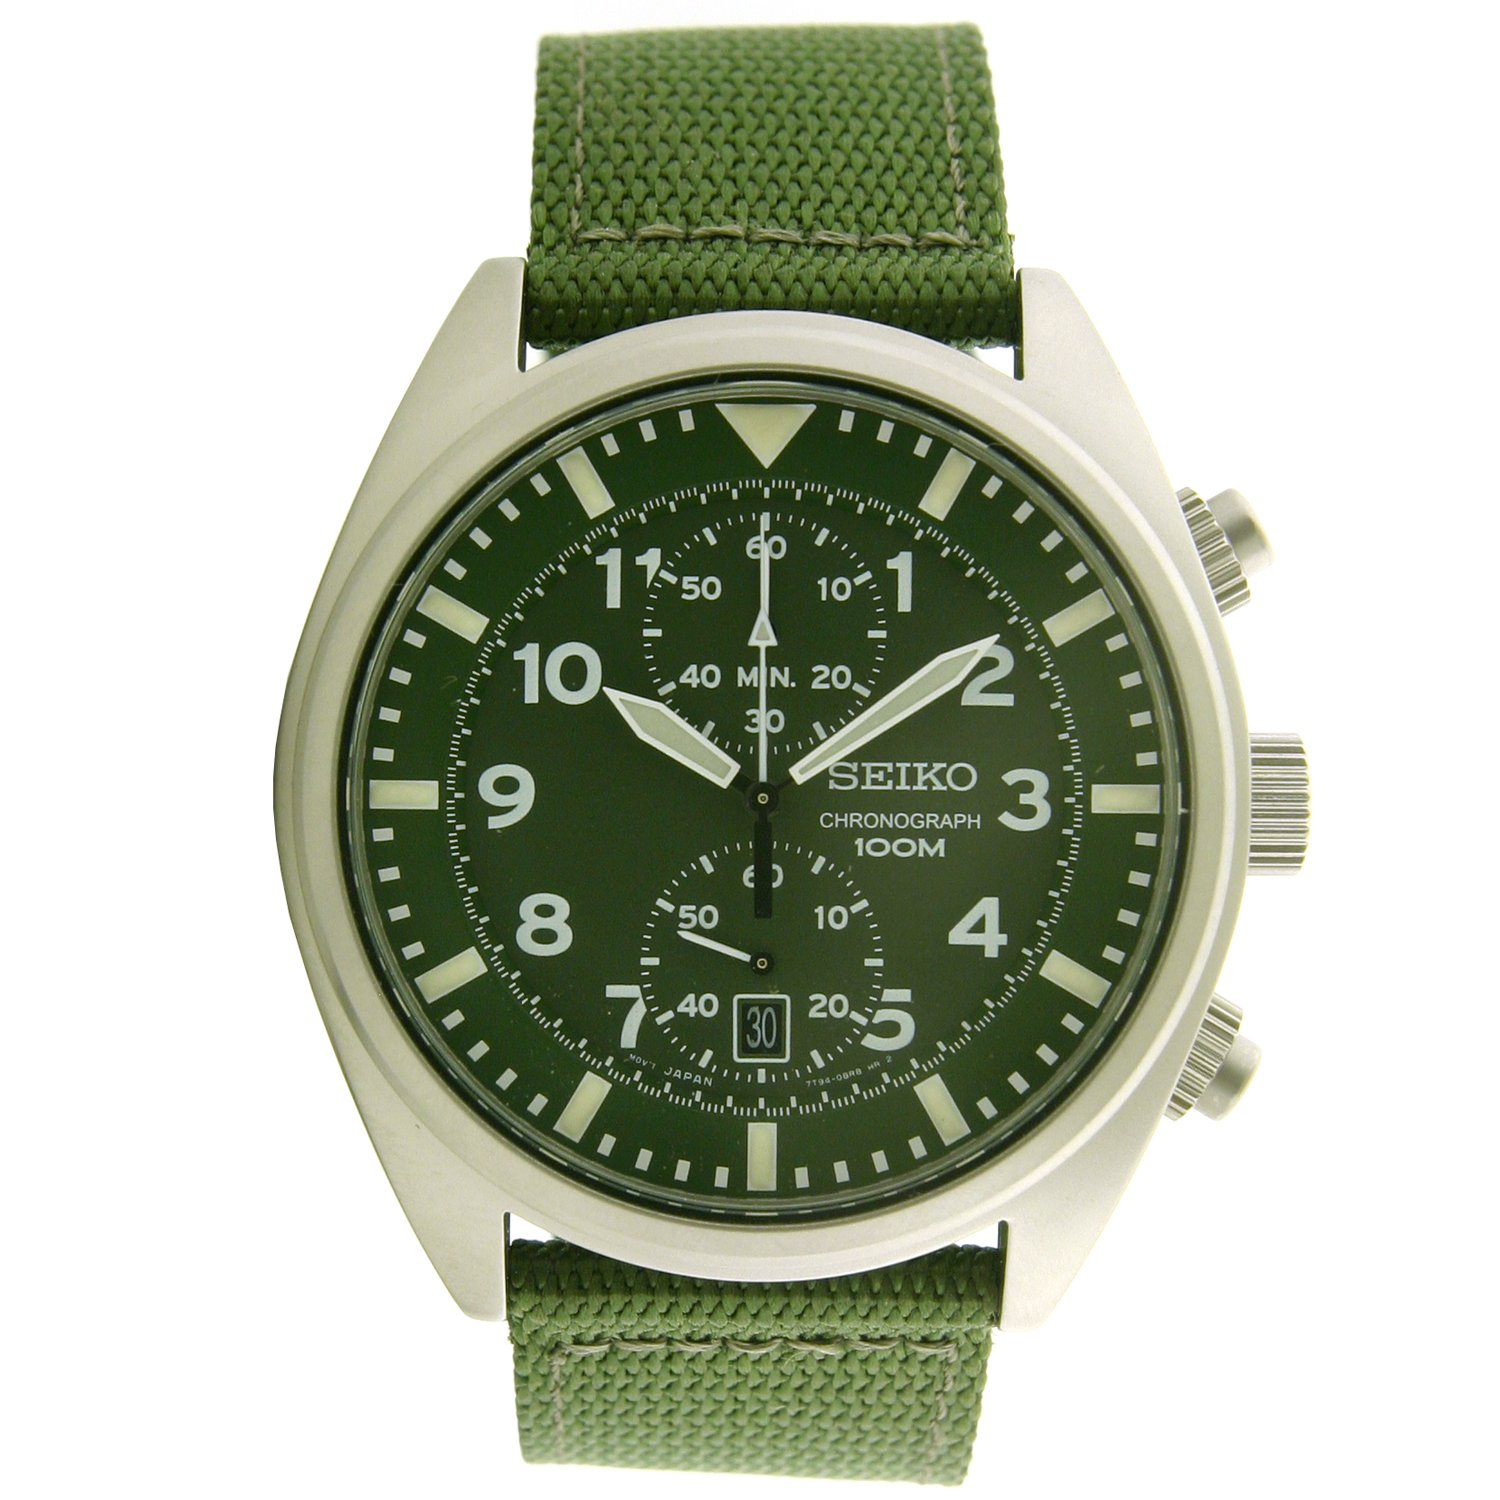 chronograph seiko watches online z discountshop com watch